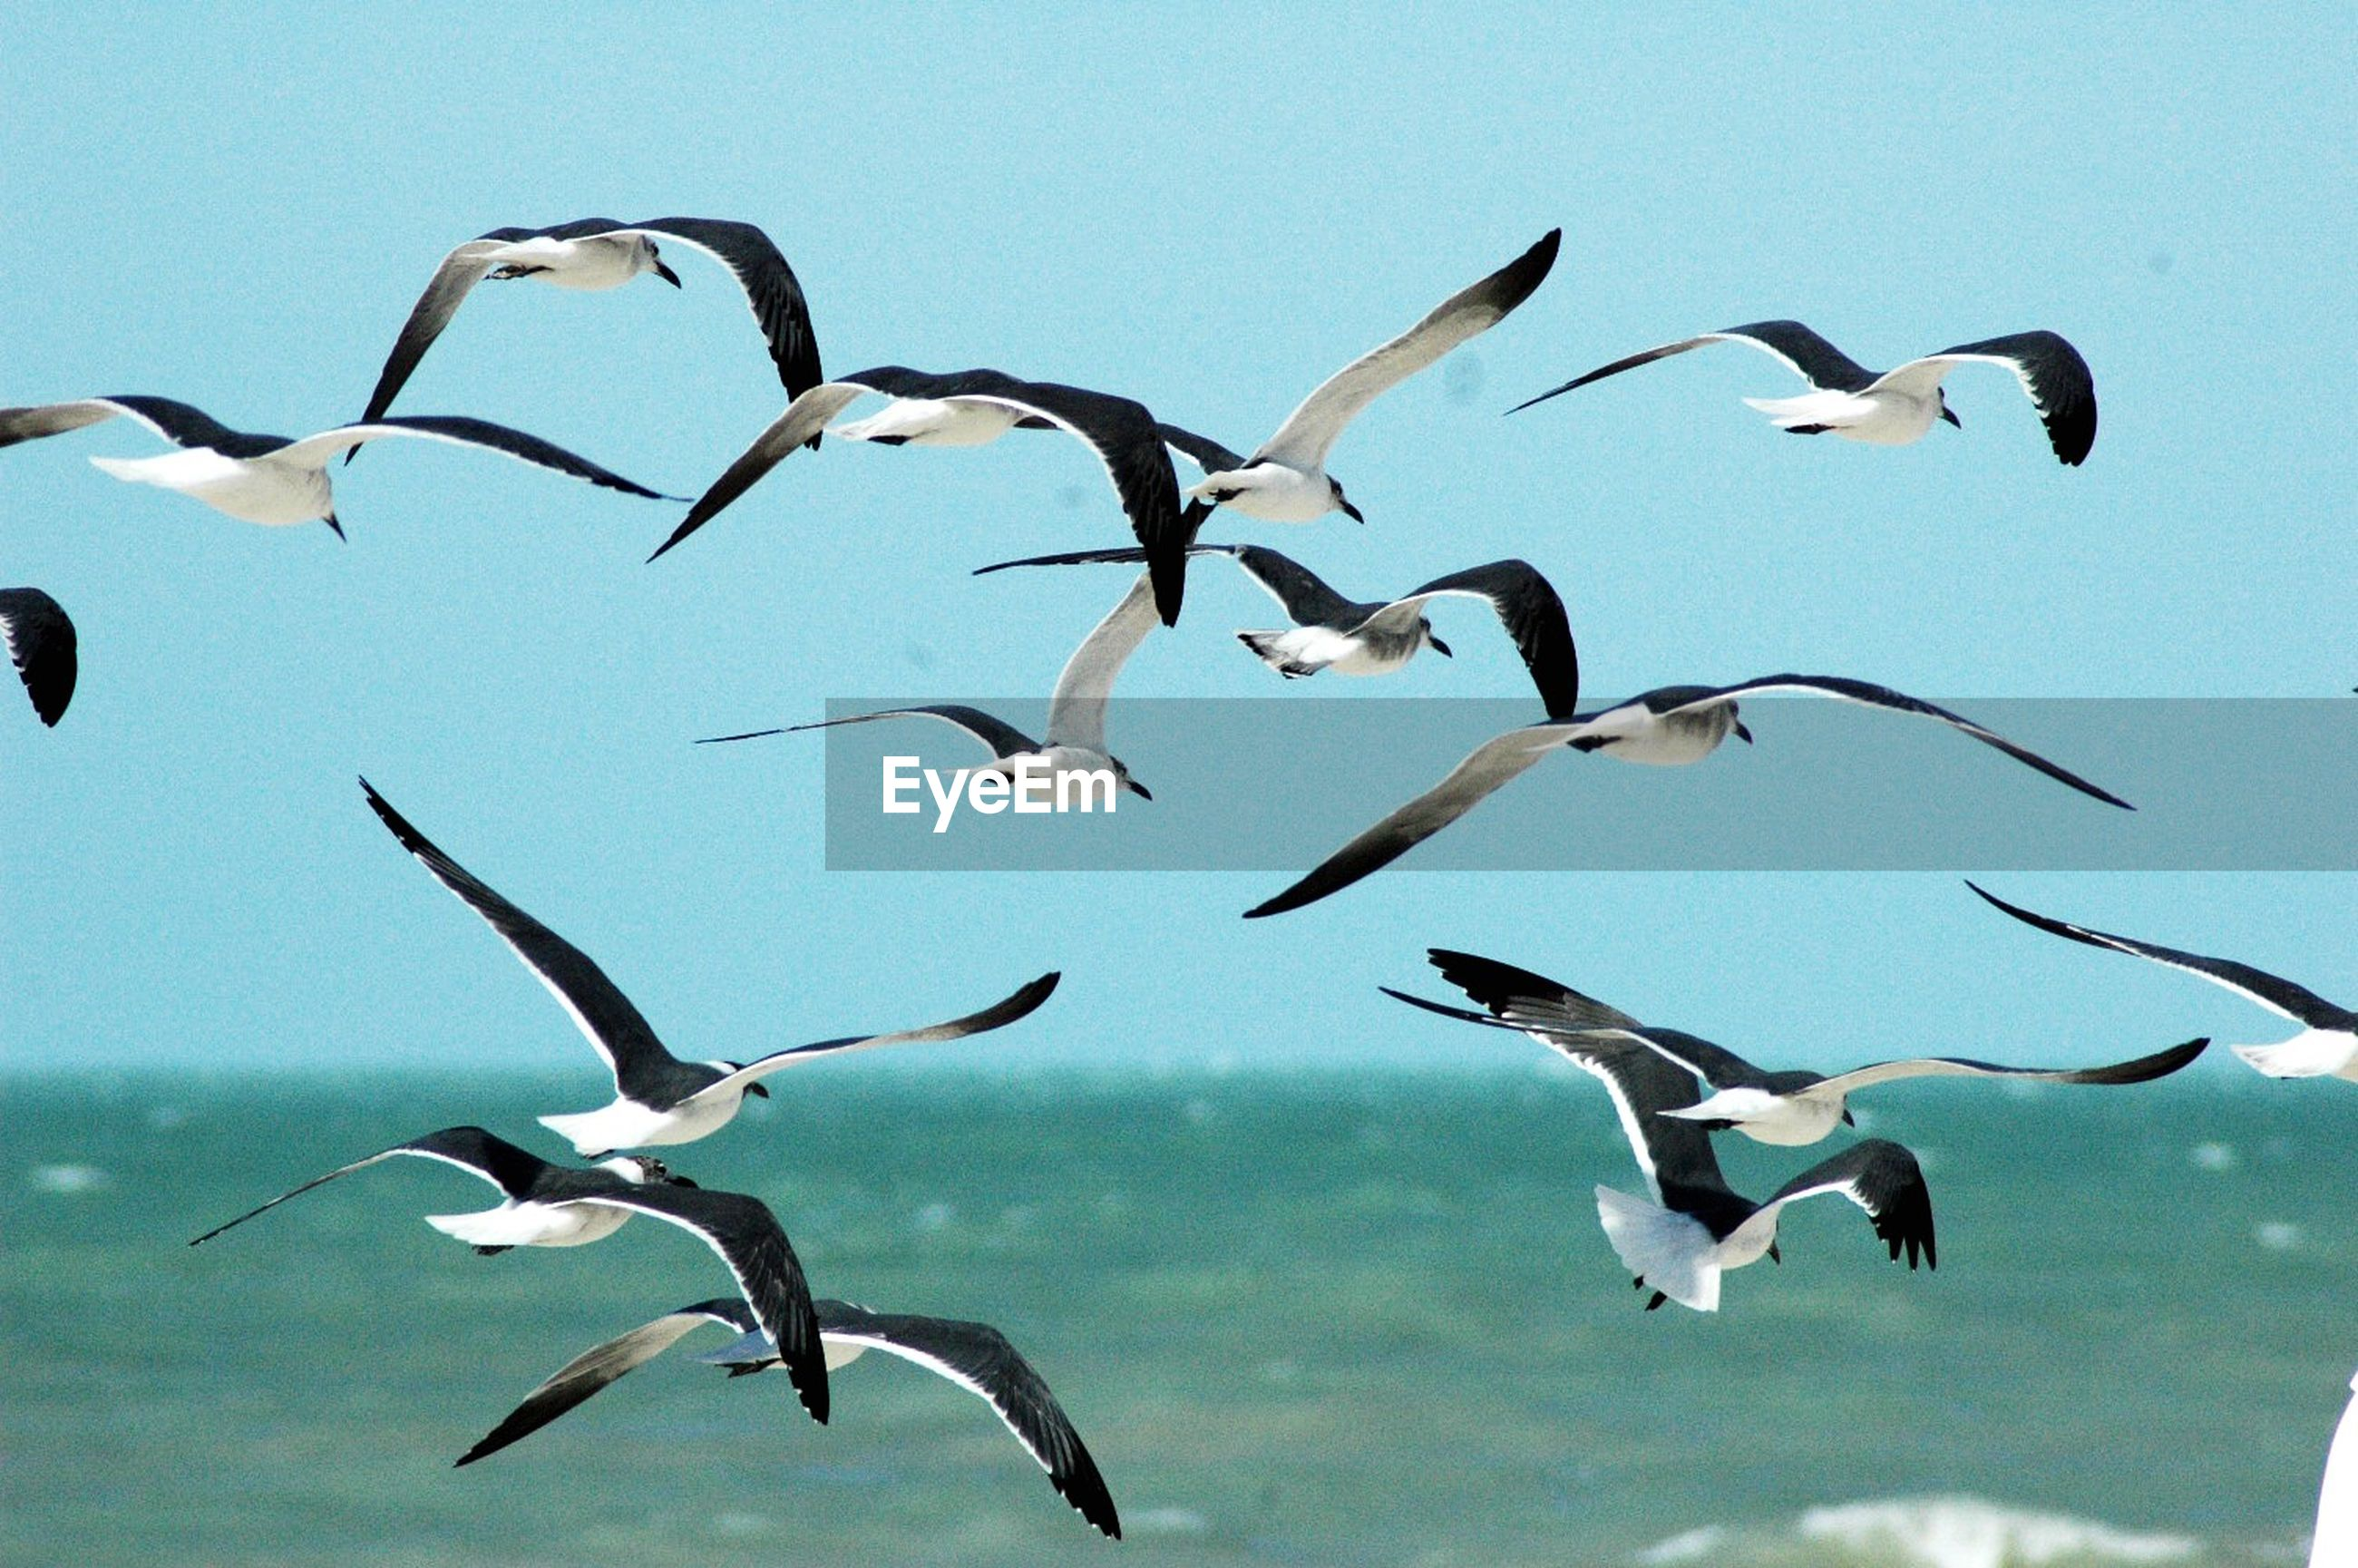 bird, animal themes, animals in the wild, wildlife, flying, flock of birds, spread wings, sky, seagull, low angle view, mid-air, medium group of animals, nature, day, clear sky, blue, outdoors, three animals